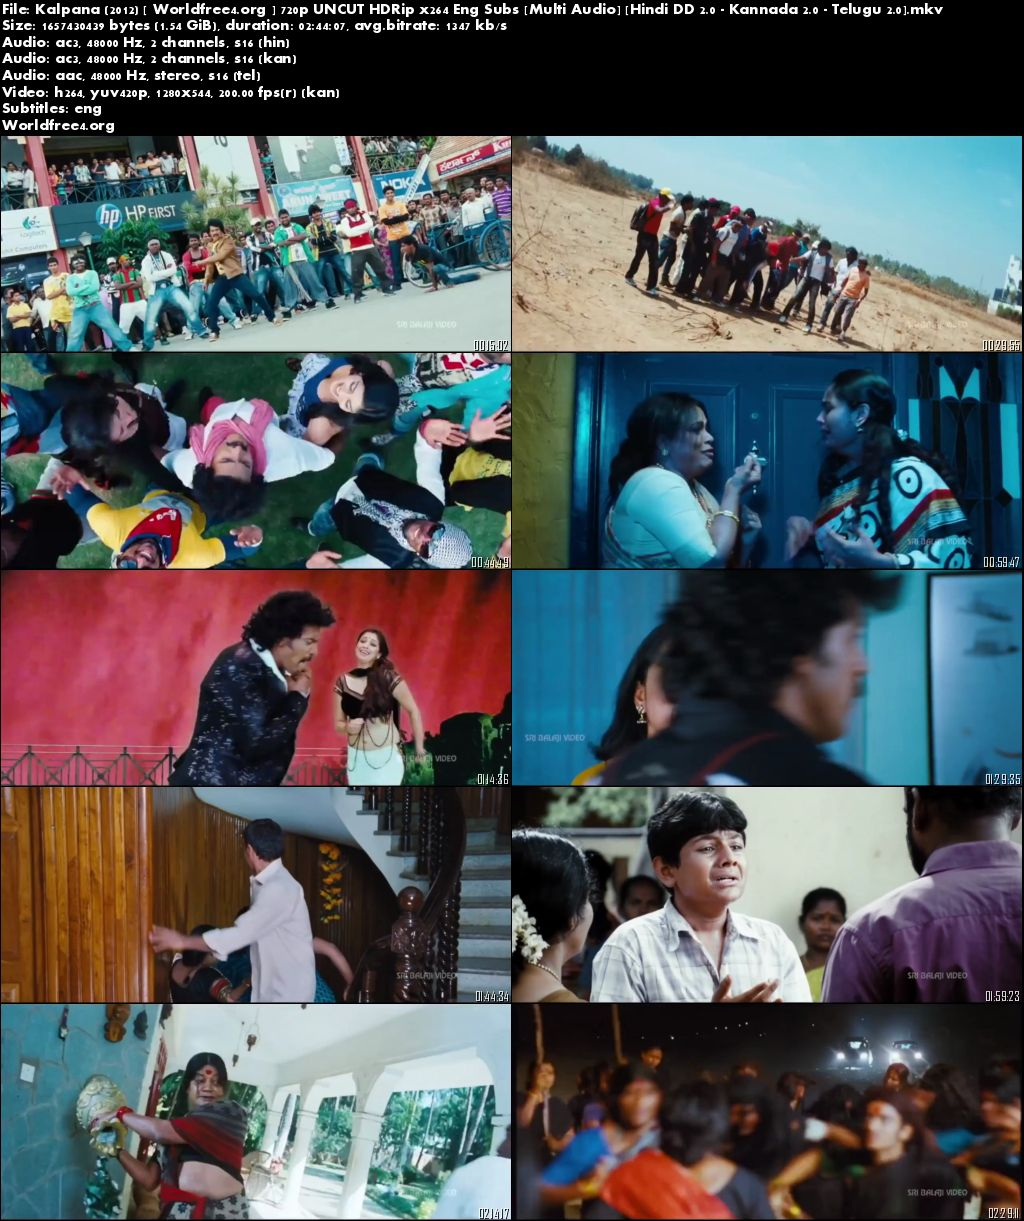 Kalpana 2012 HDRip 720p Multi Audio Hindi UNCUT 1.5Gb Download